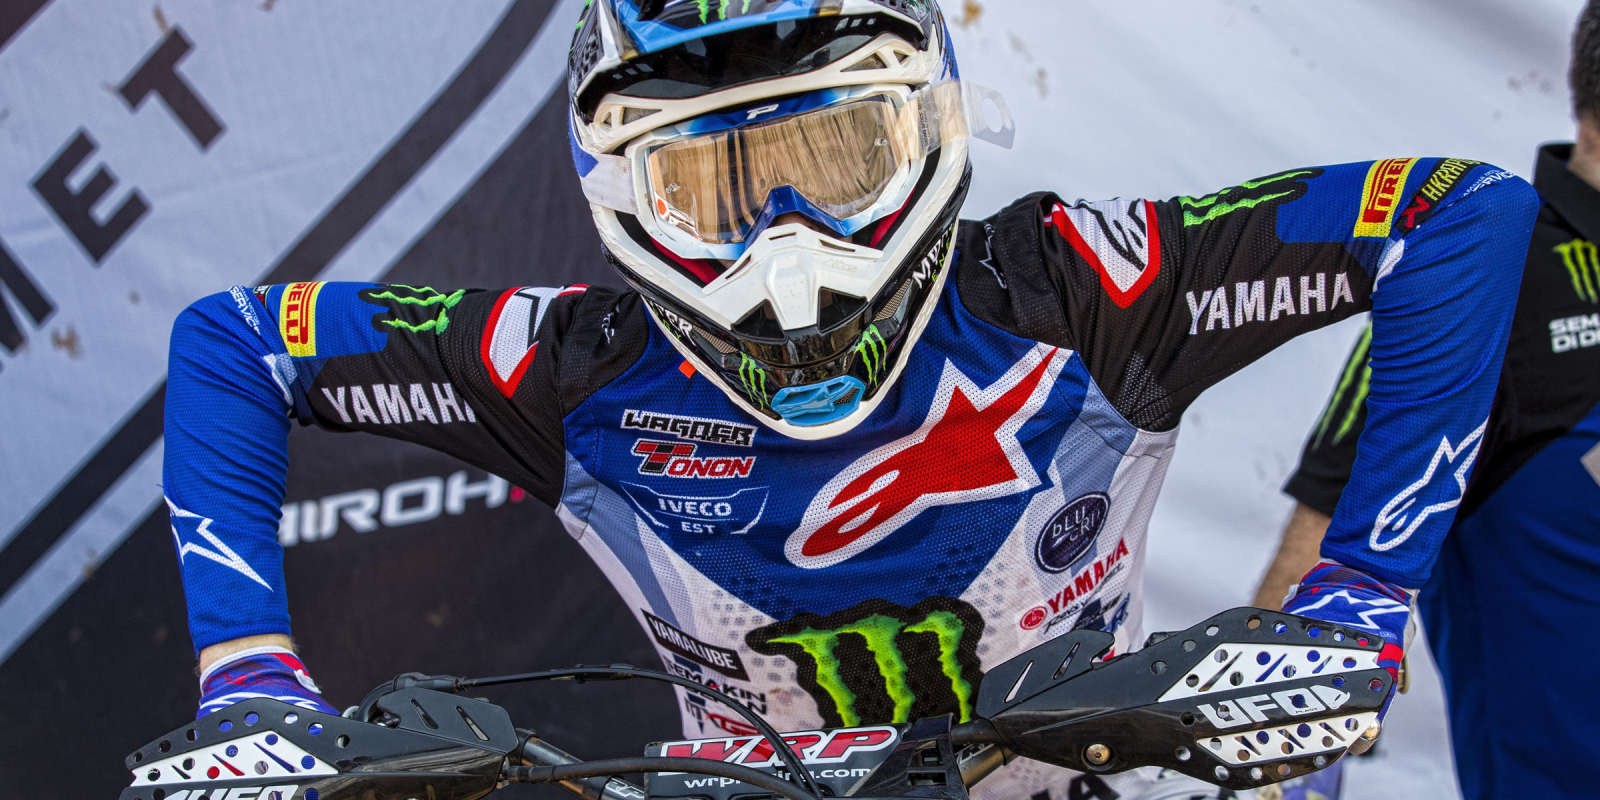 Romain Febvre at the 2019 Grand Prix of Asia